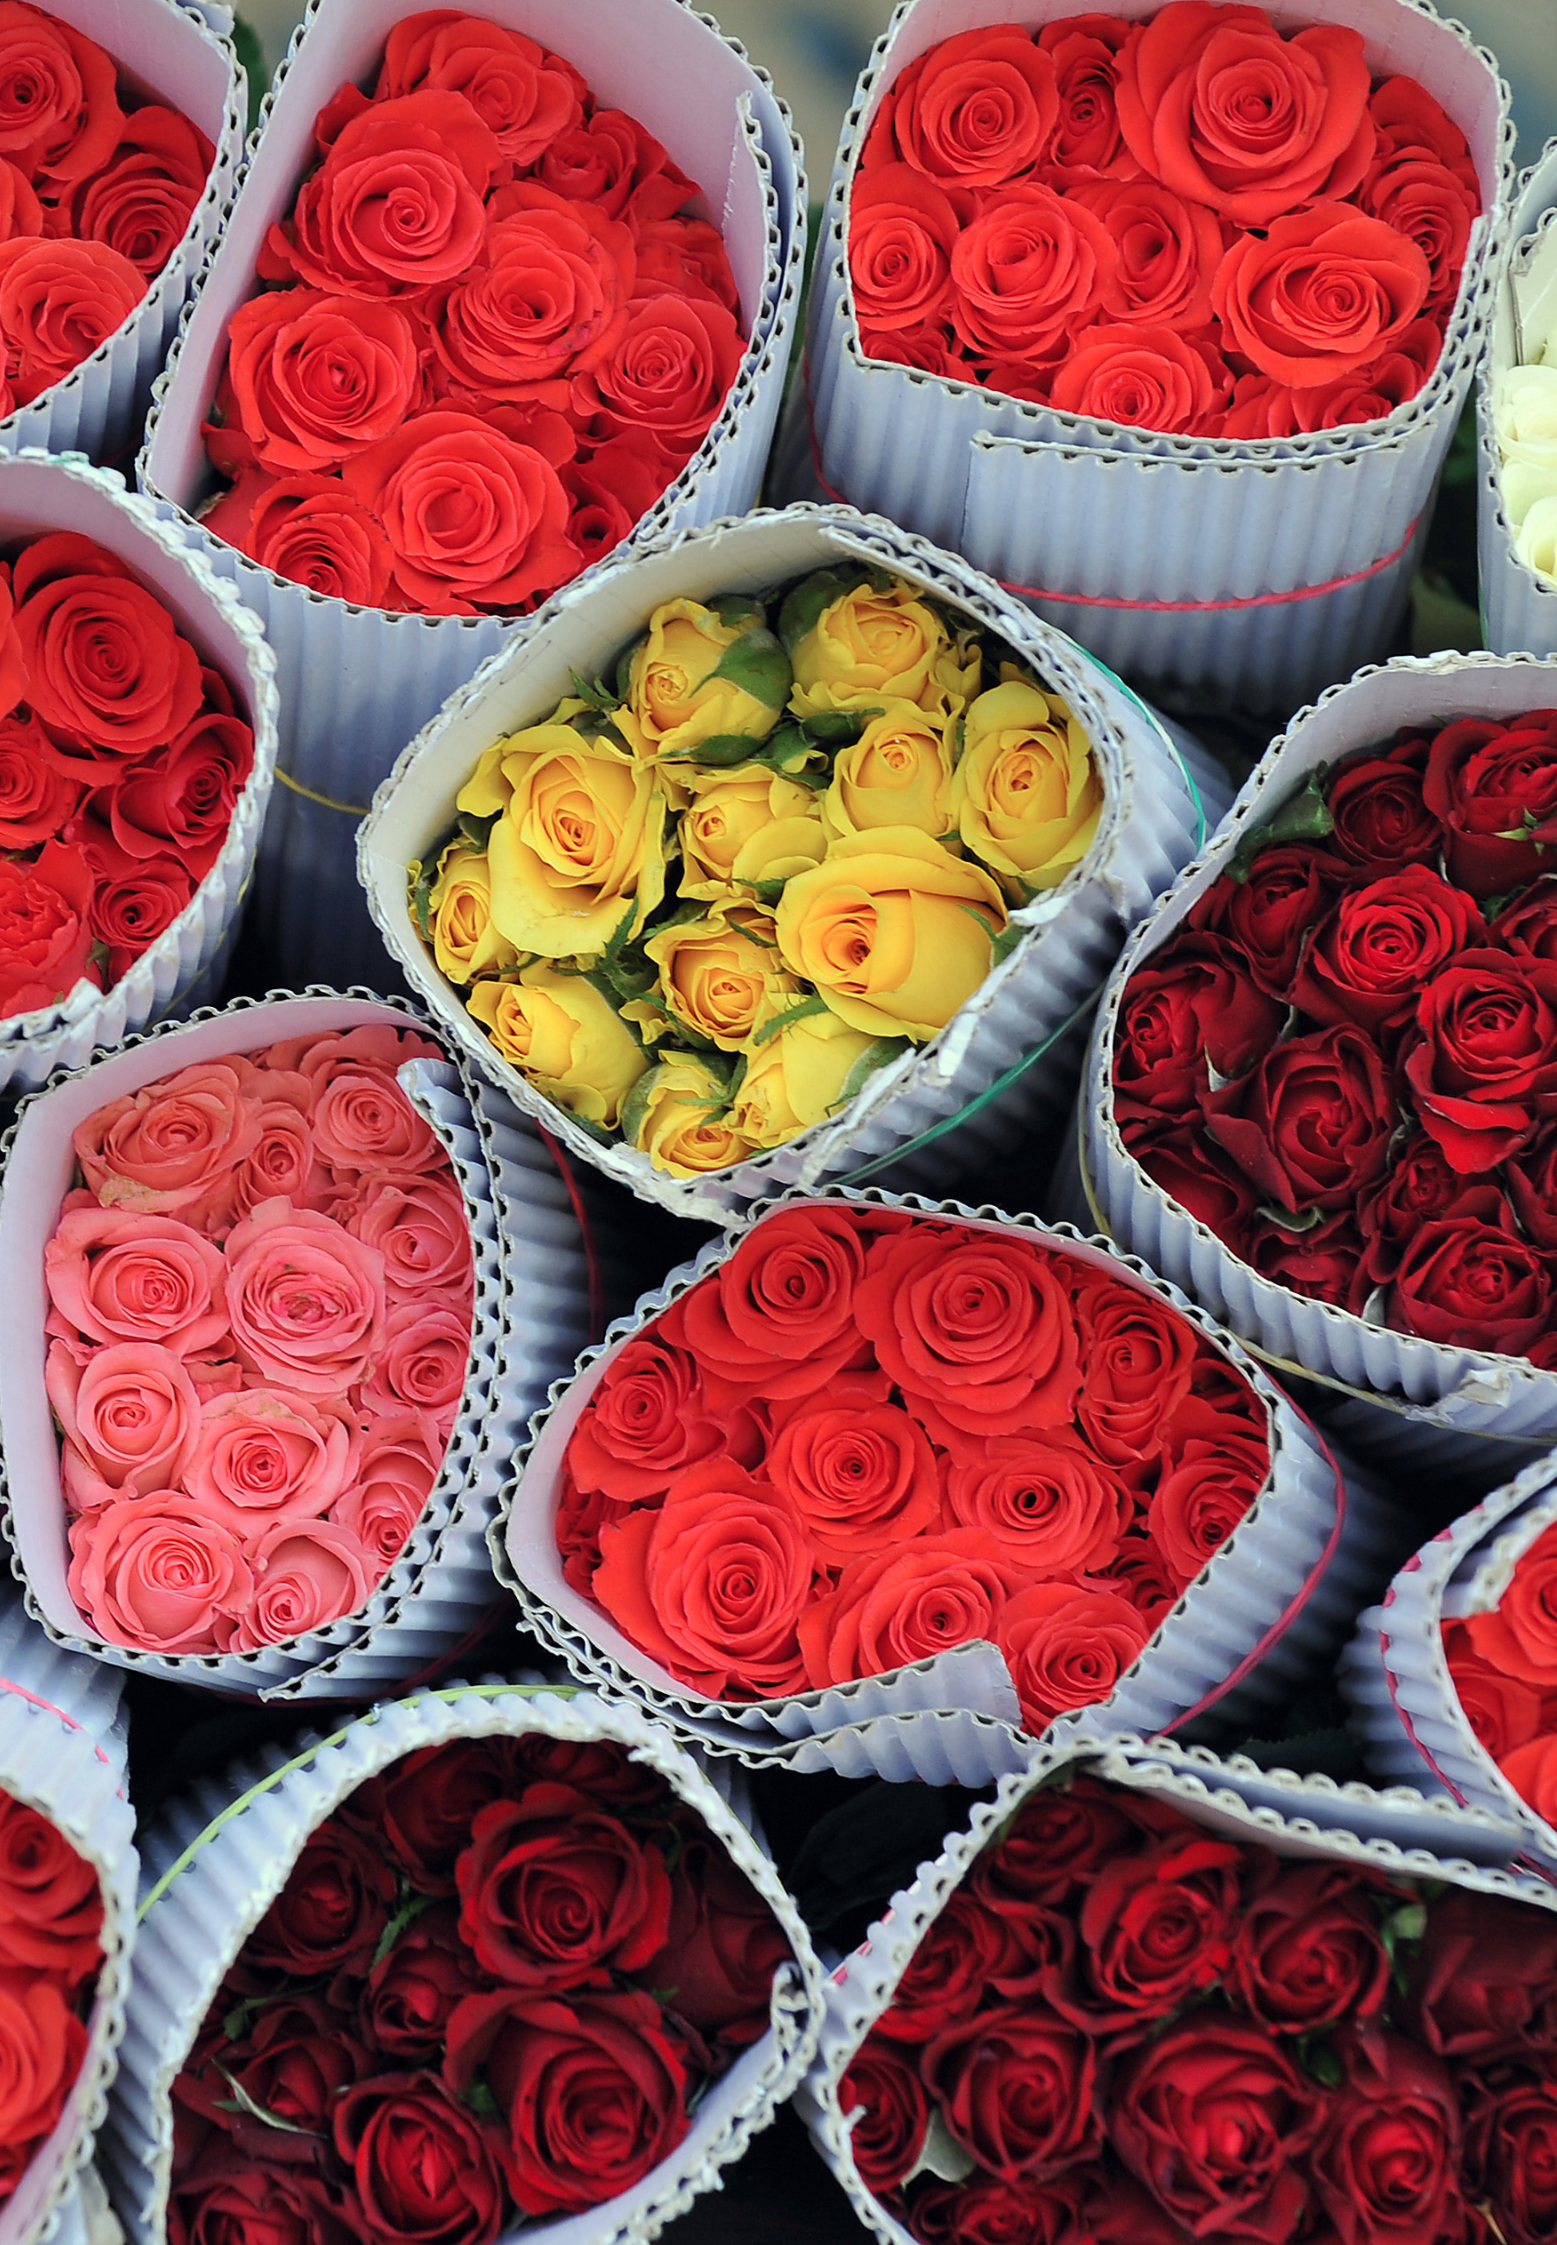 The Hidden Meaning Behind the Number of Roses in Your